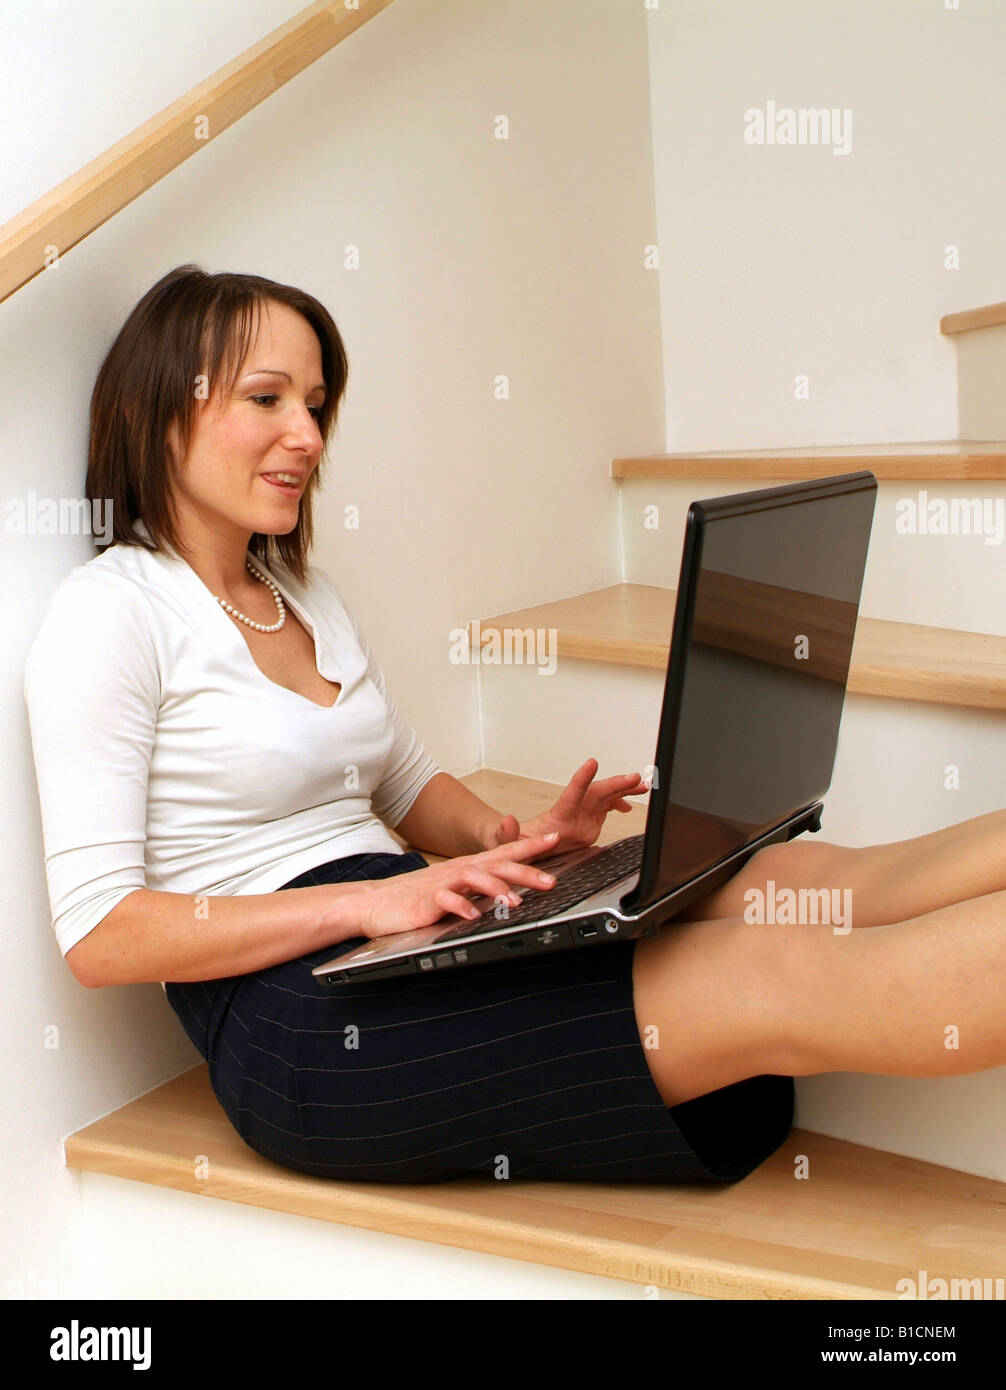 Young business woman sitting on stairs and using laptop - Stock Image